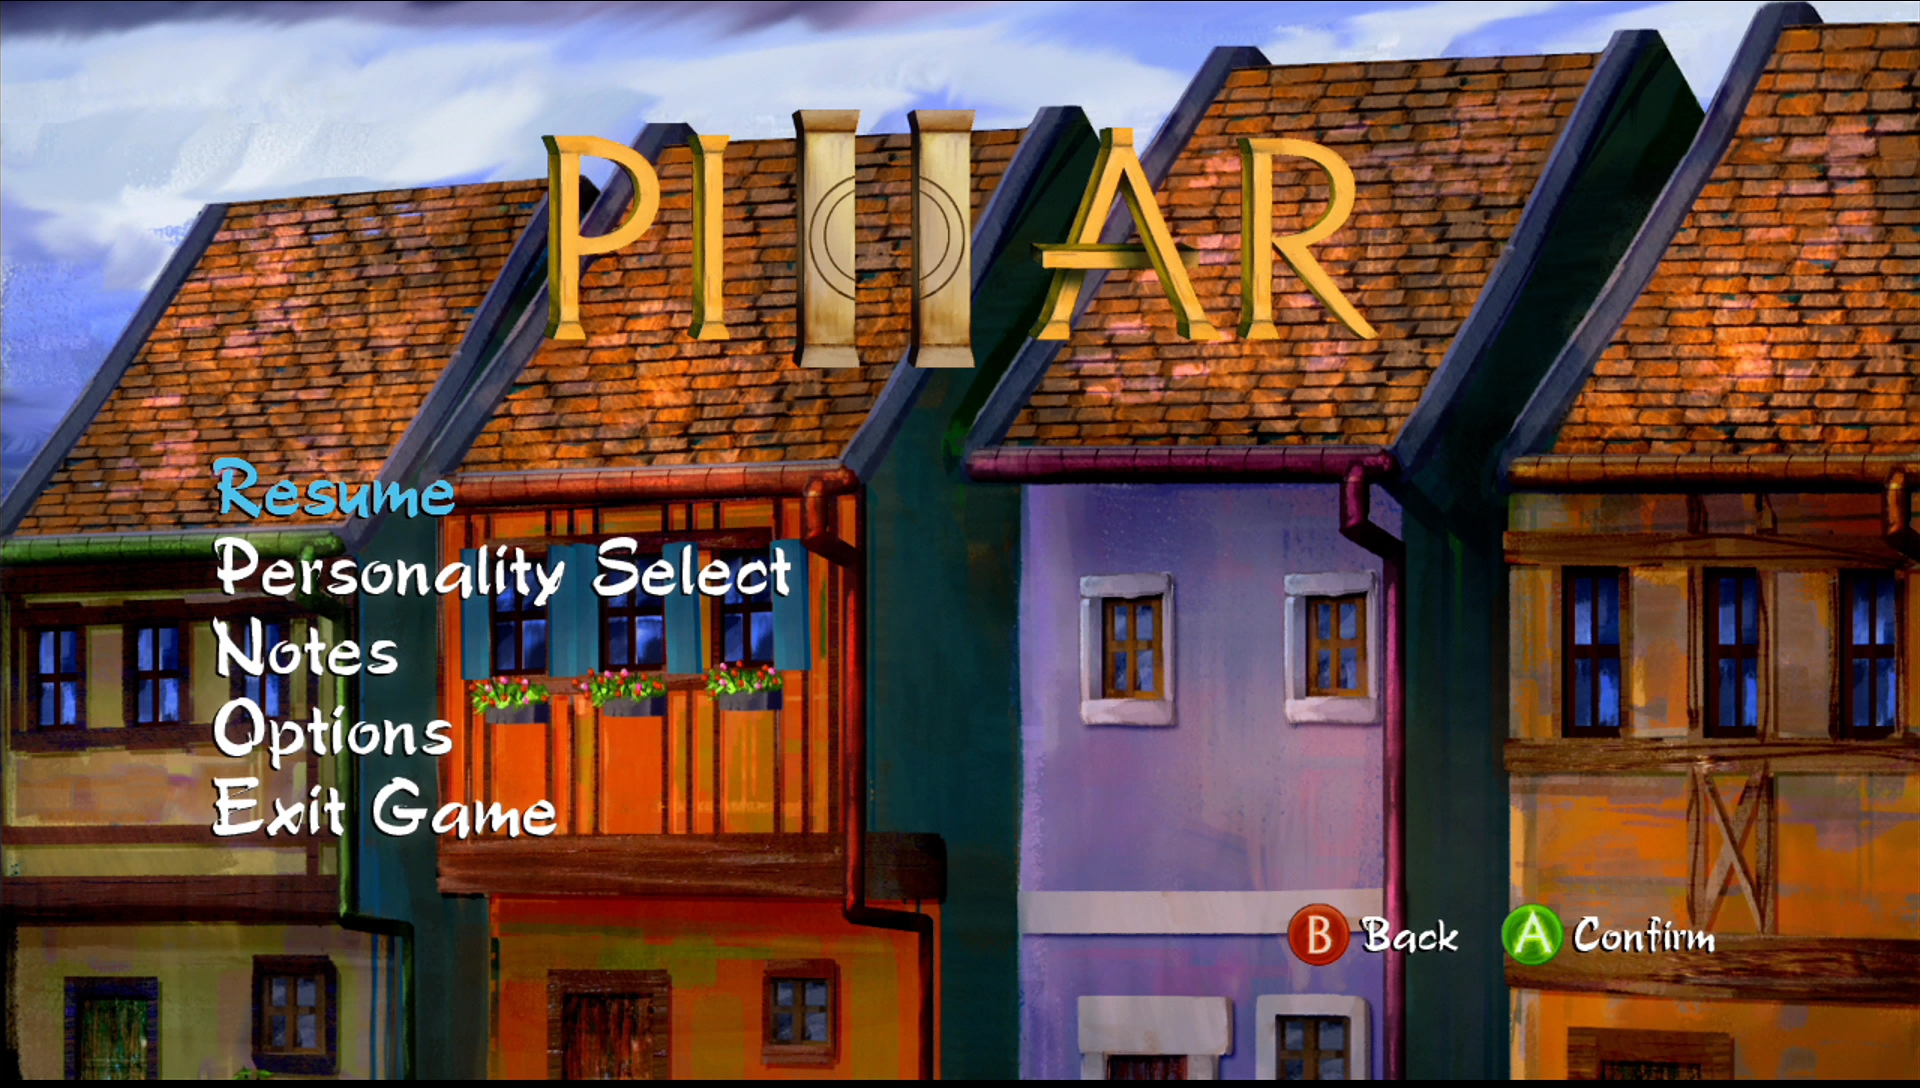 Pillar review (Xbox Live Indie Game)